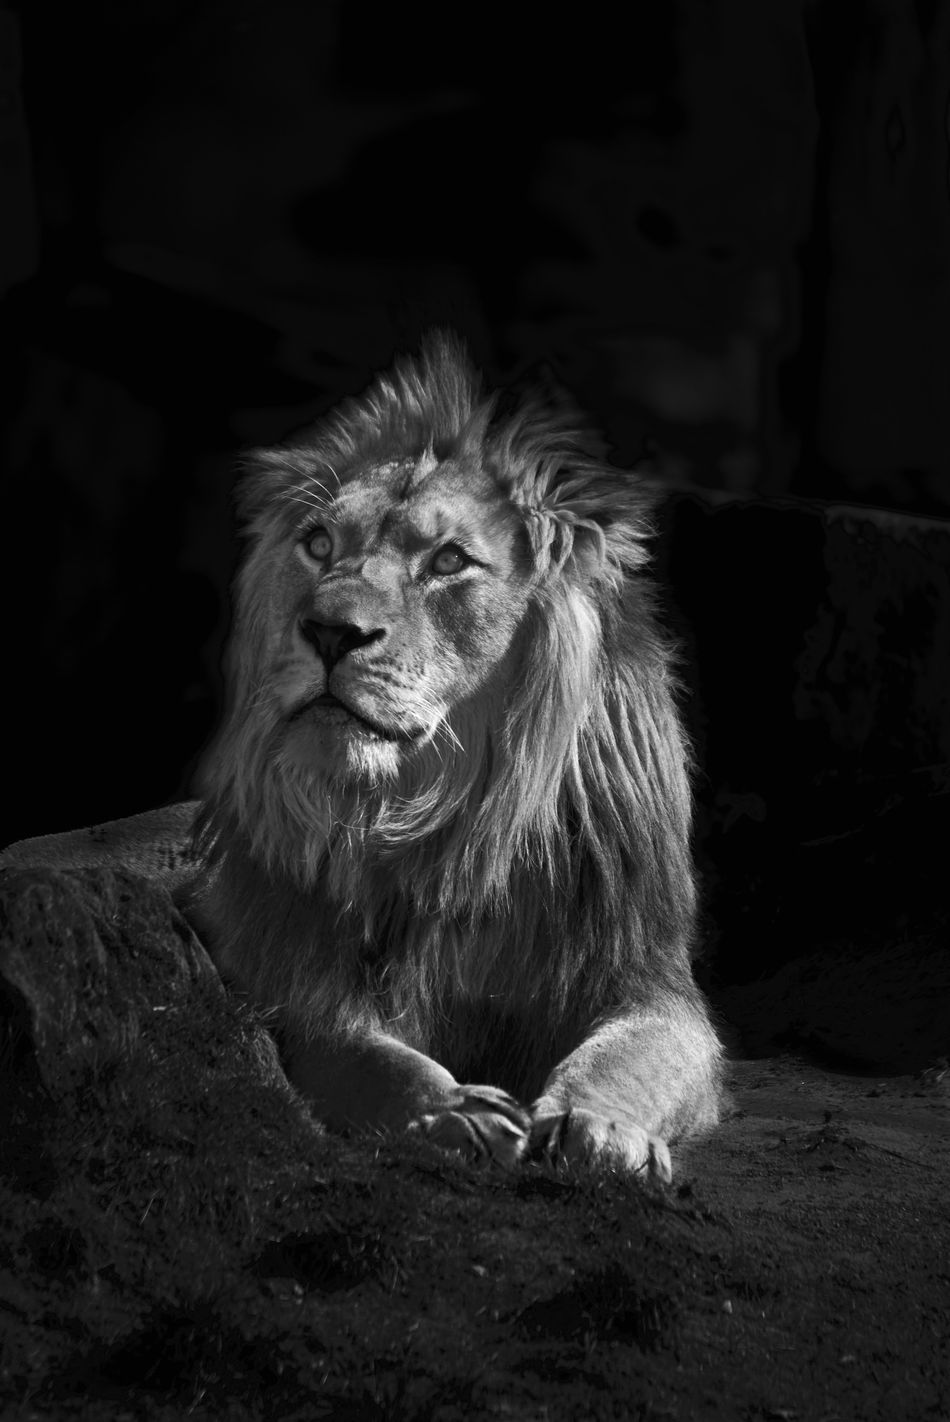 lion wake up Animal Animal Themes Cat Cats Day HEAD Lion Lion King  Lionking Lions No People One Animal Relaxation Zoo Zoo Animals  Zoophotography